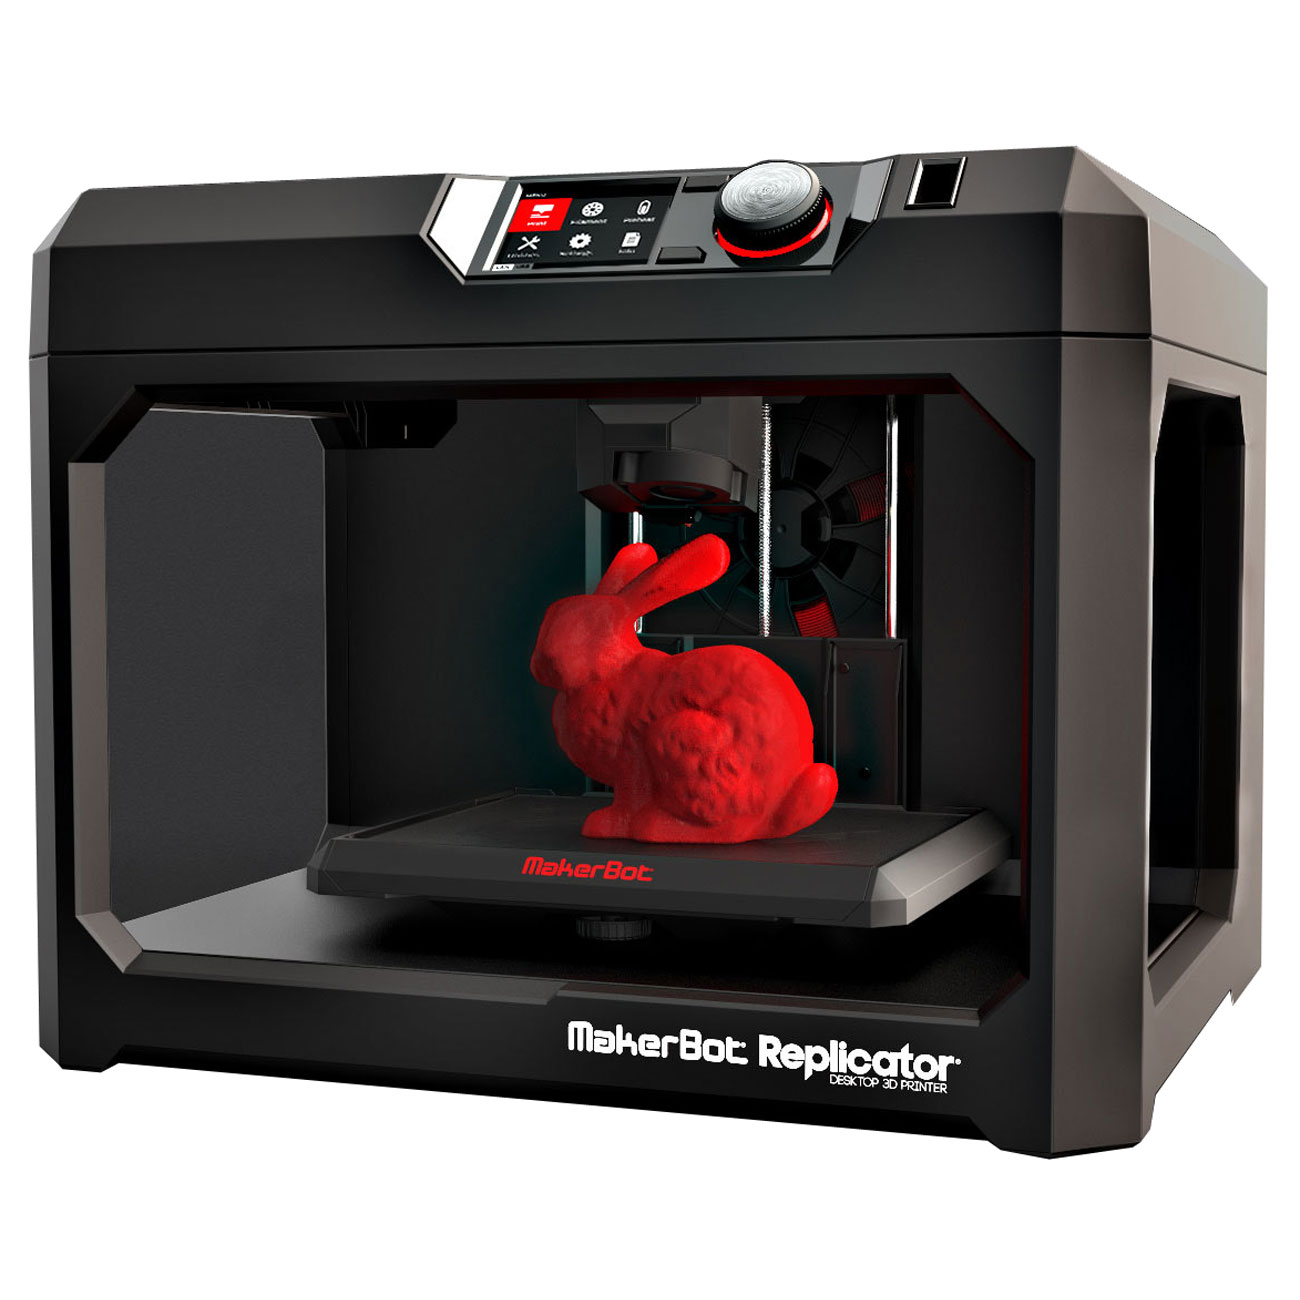 Makerbot Replicator 5th Imprimante 3d Makerbot Sur Ldlc Com